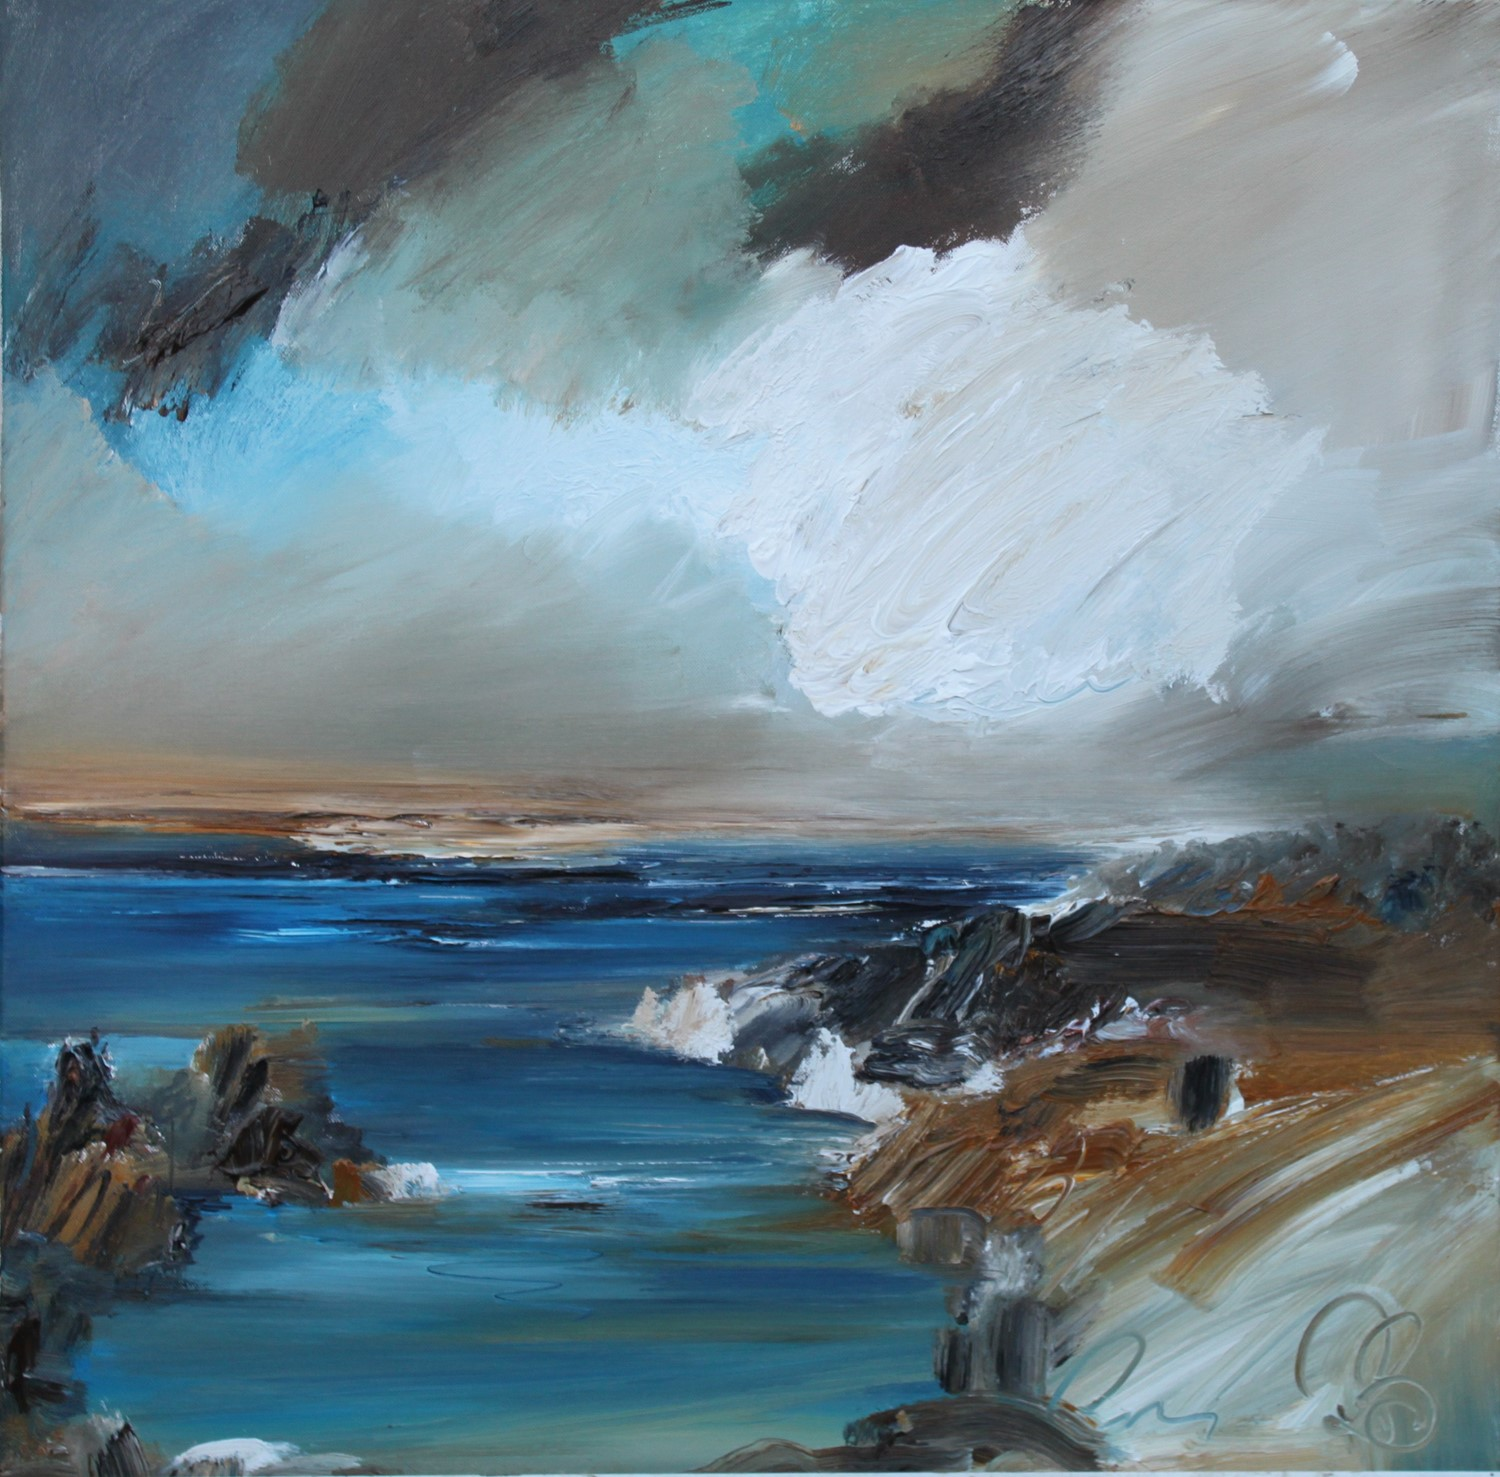 'Finding a cove' by artist Rosanne Barr